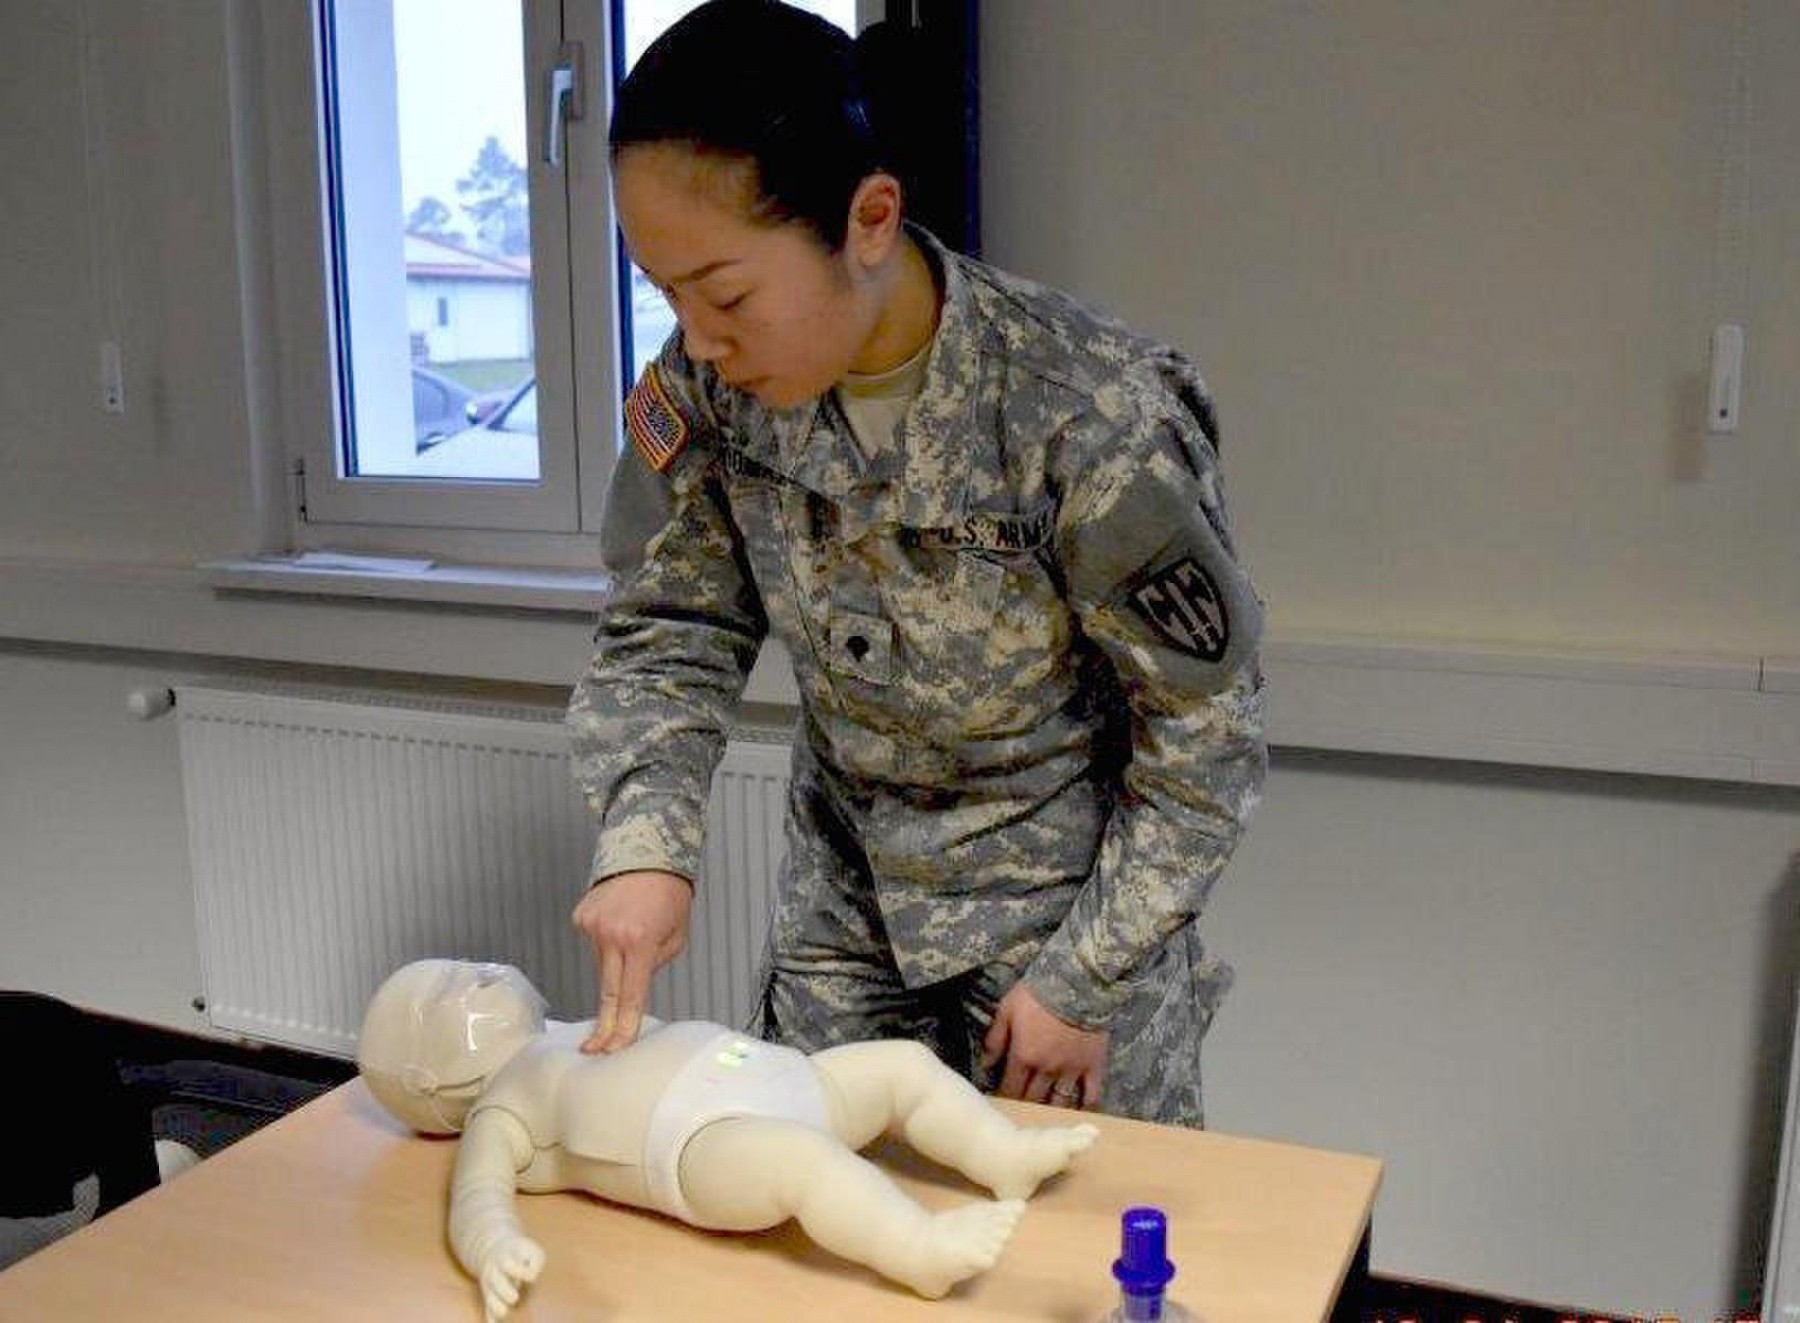 Military Police Learn Cpr Article The United States Army